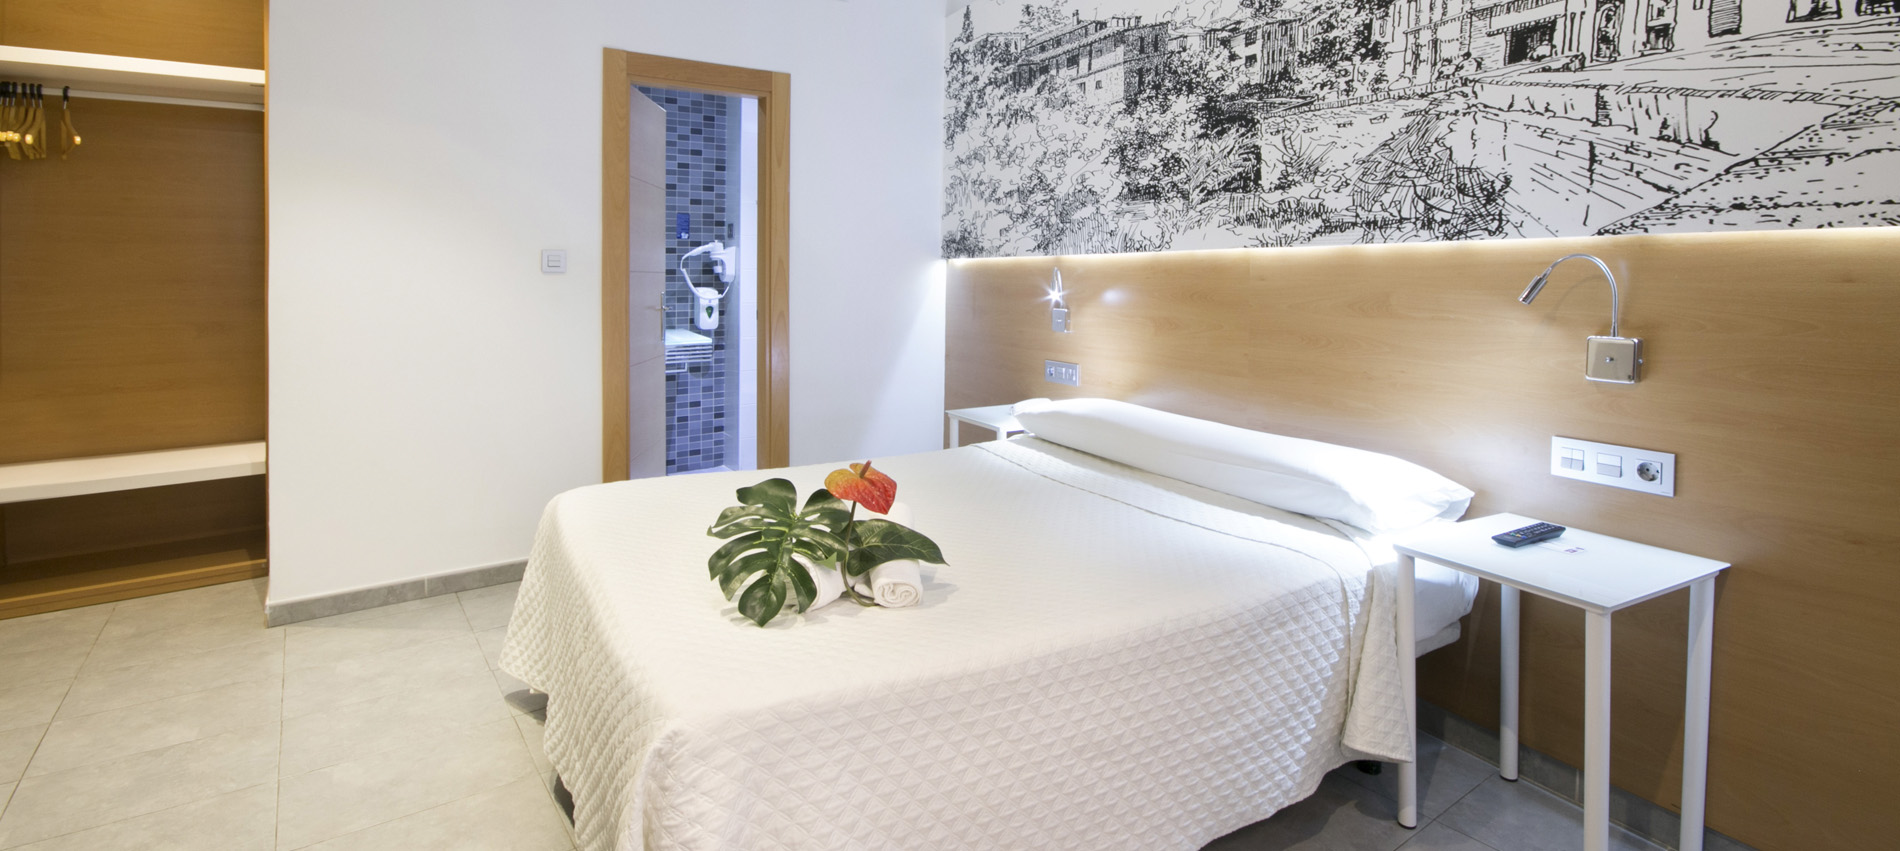 Cheap Accommodation Granada. Hostel Atenas Granada Spain